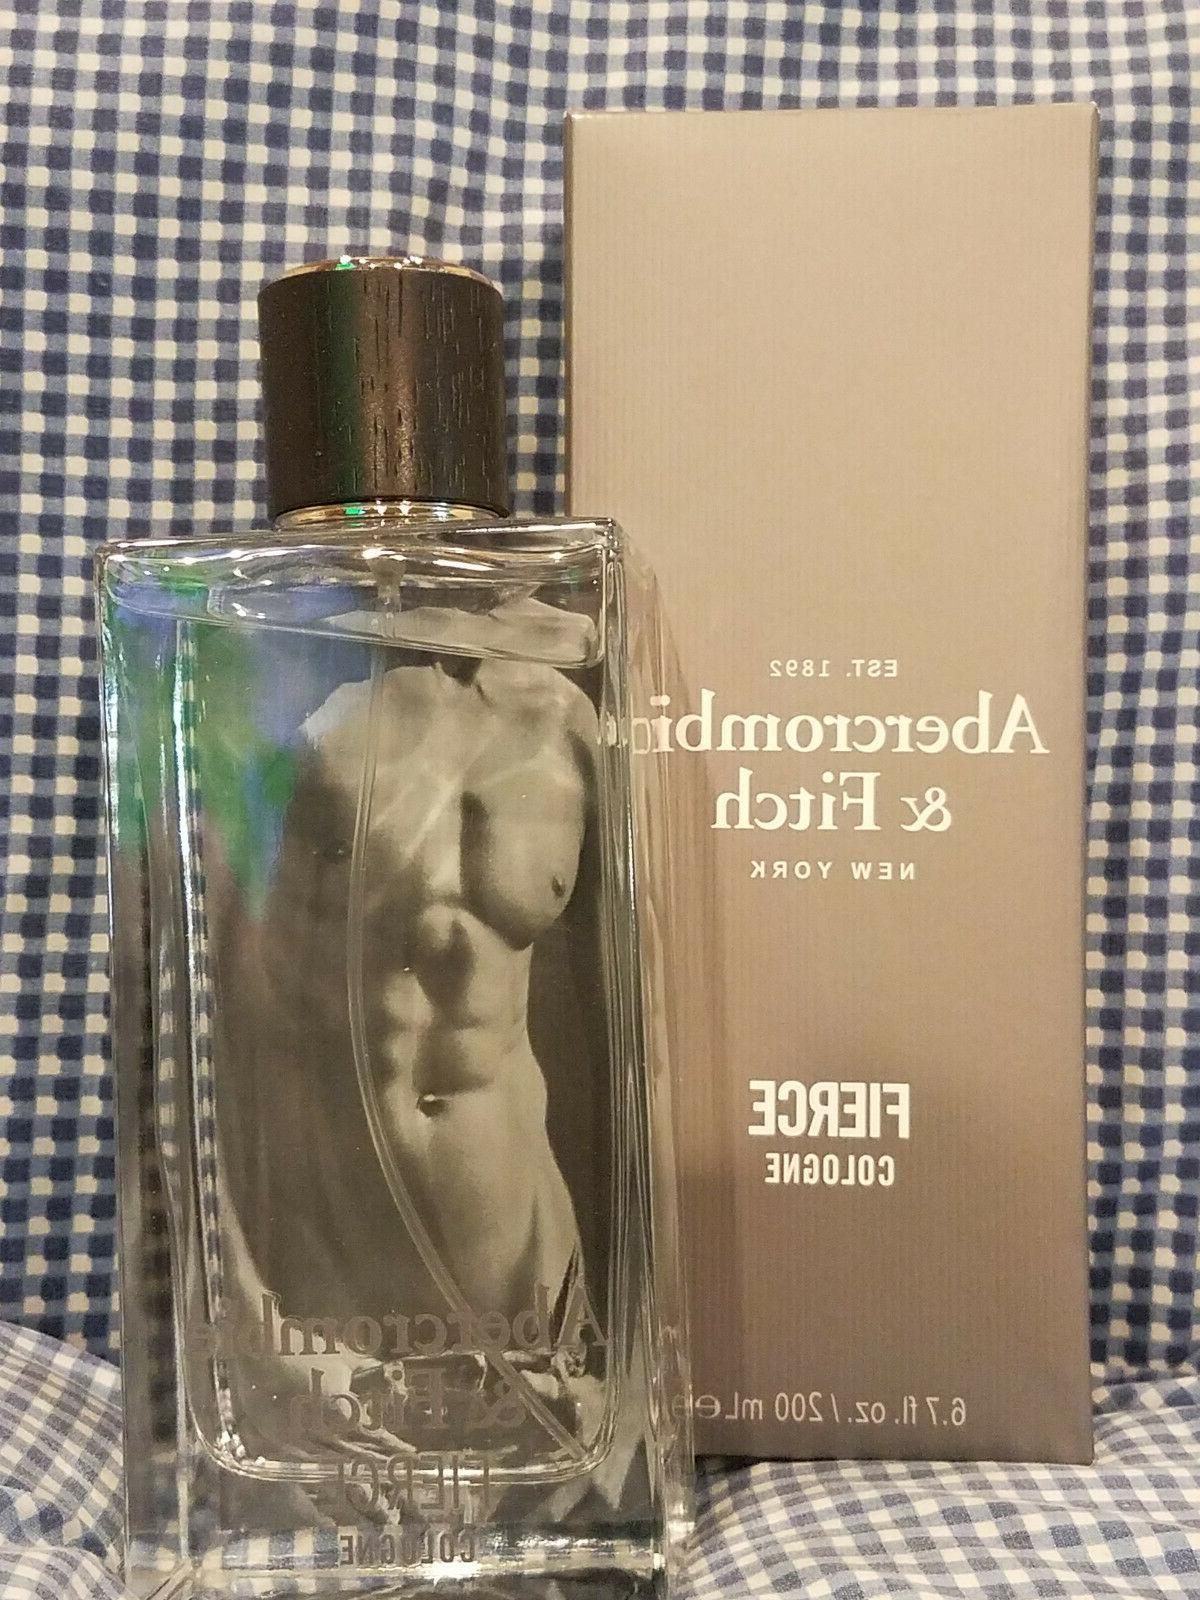 fierce by abercrombie and fitch men s